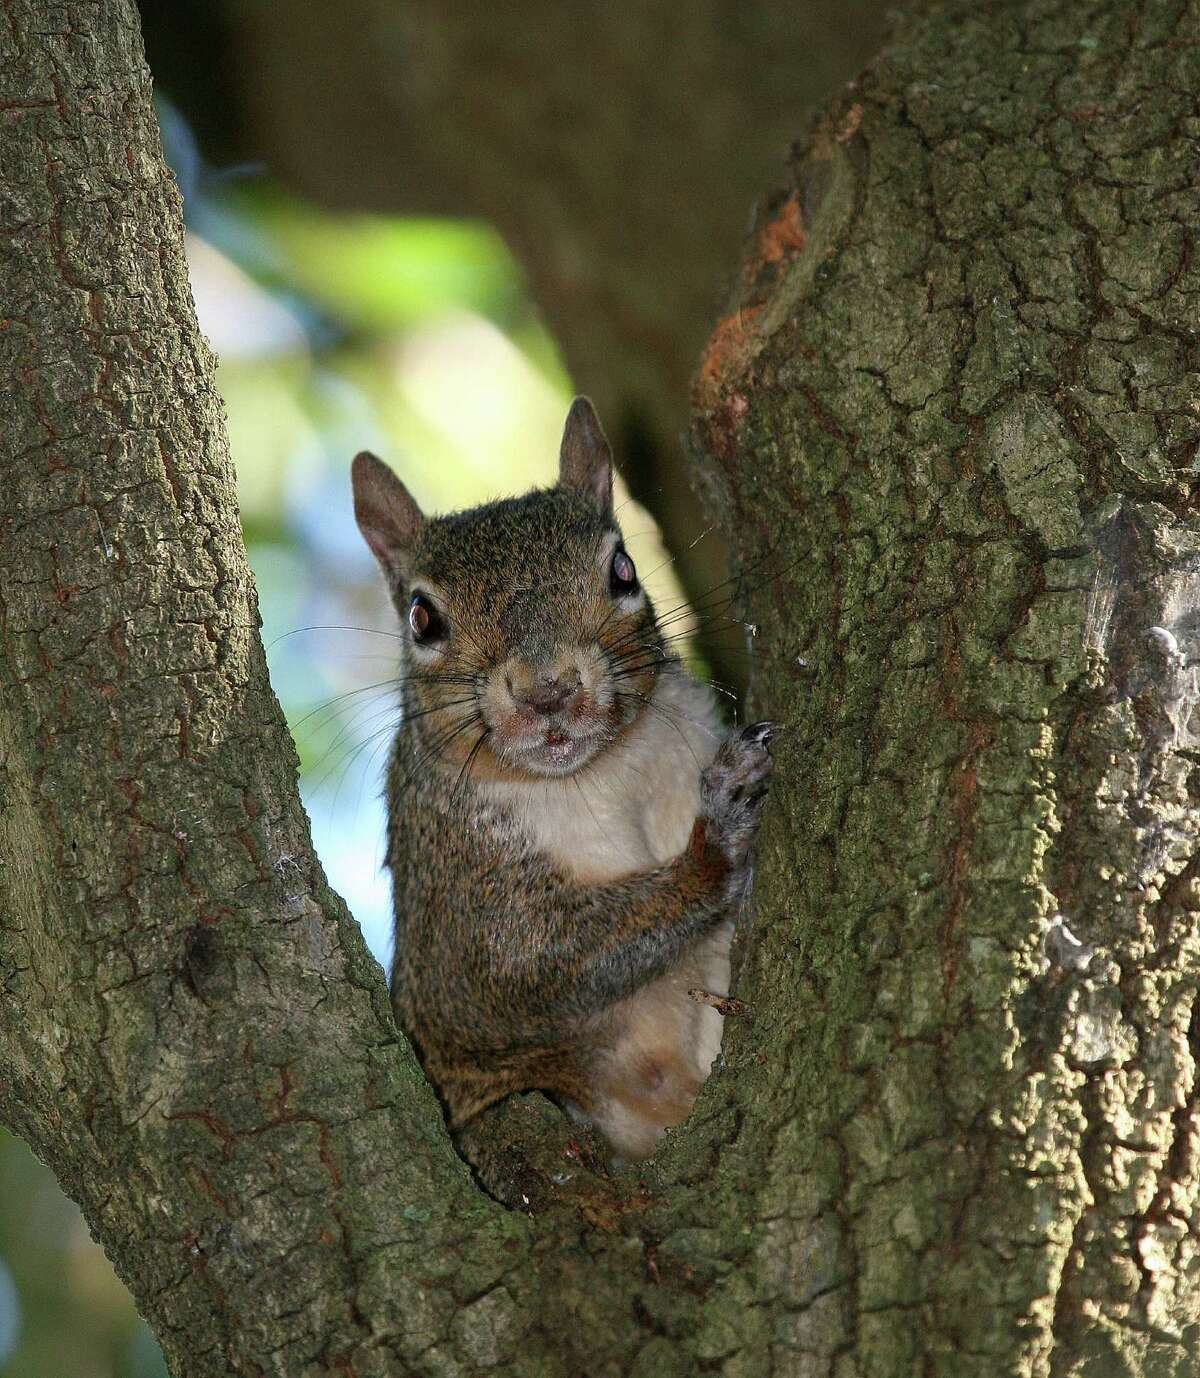 Texas In Texas, there are three types of squirrel. The Eastern gray squirrel can be 16 inches in length and weigh 1 pound.